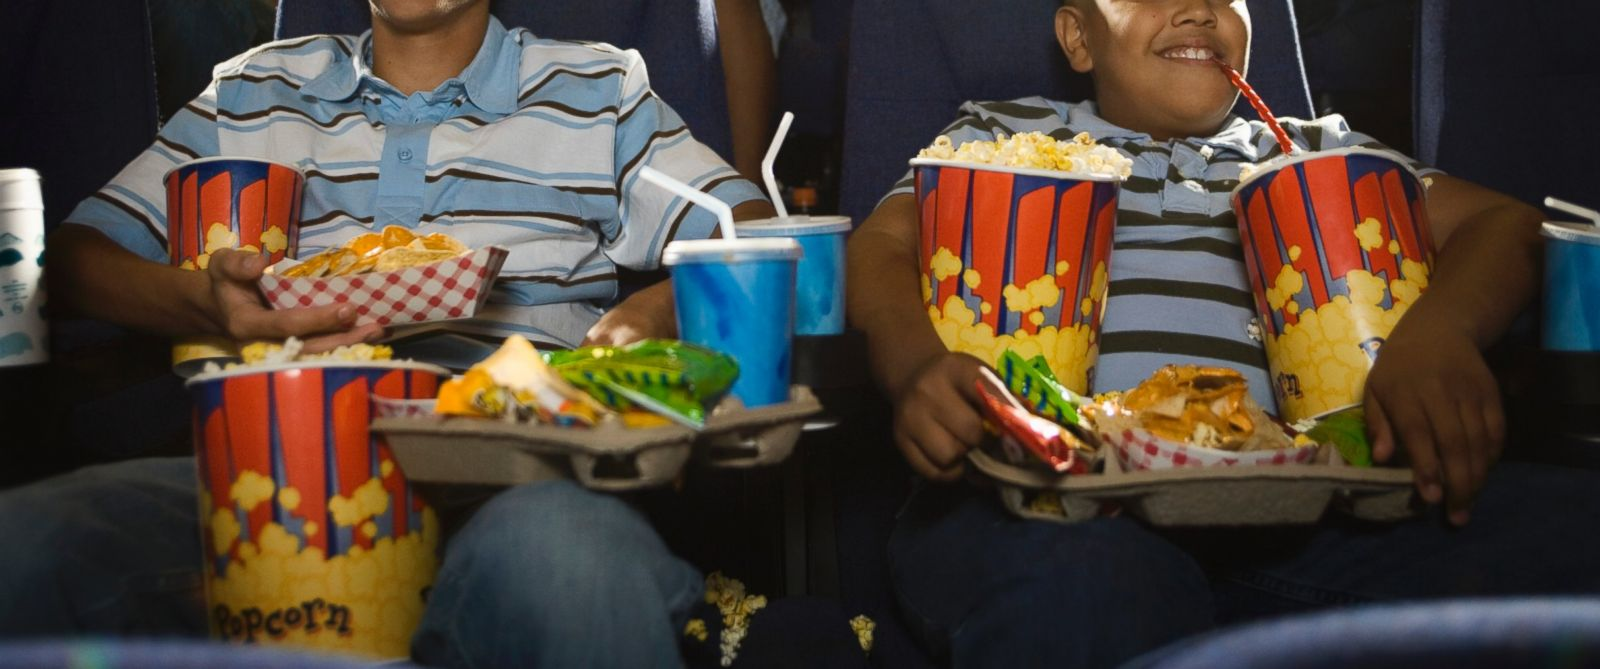 movie theater culture and traditions